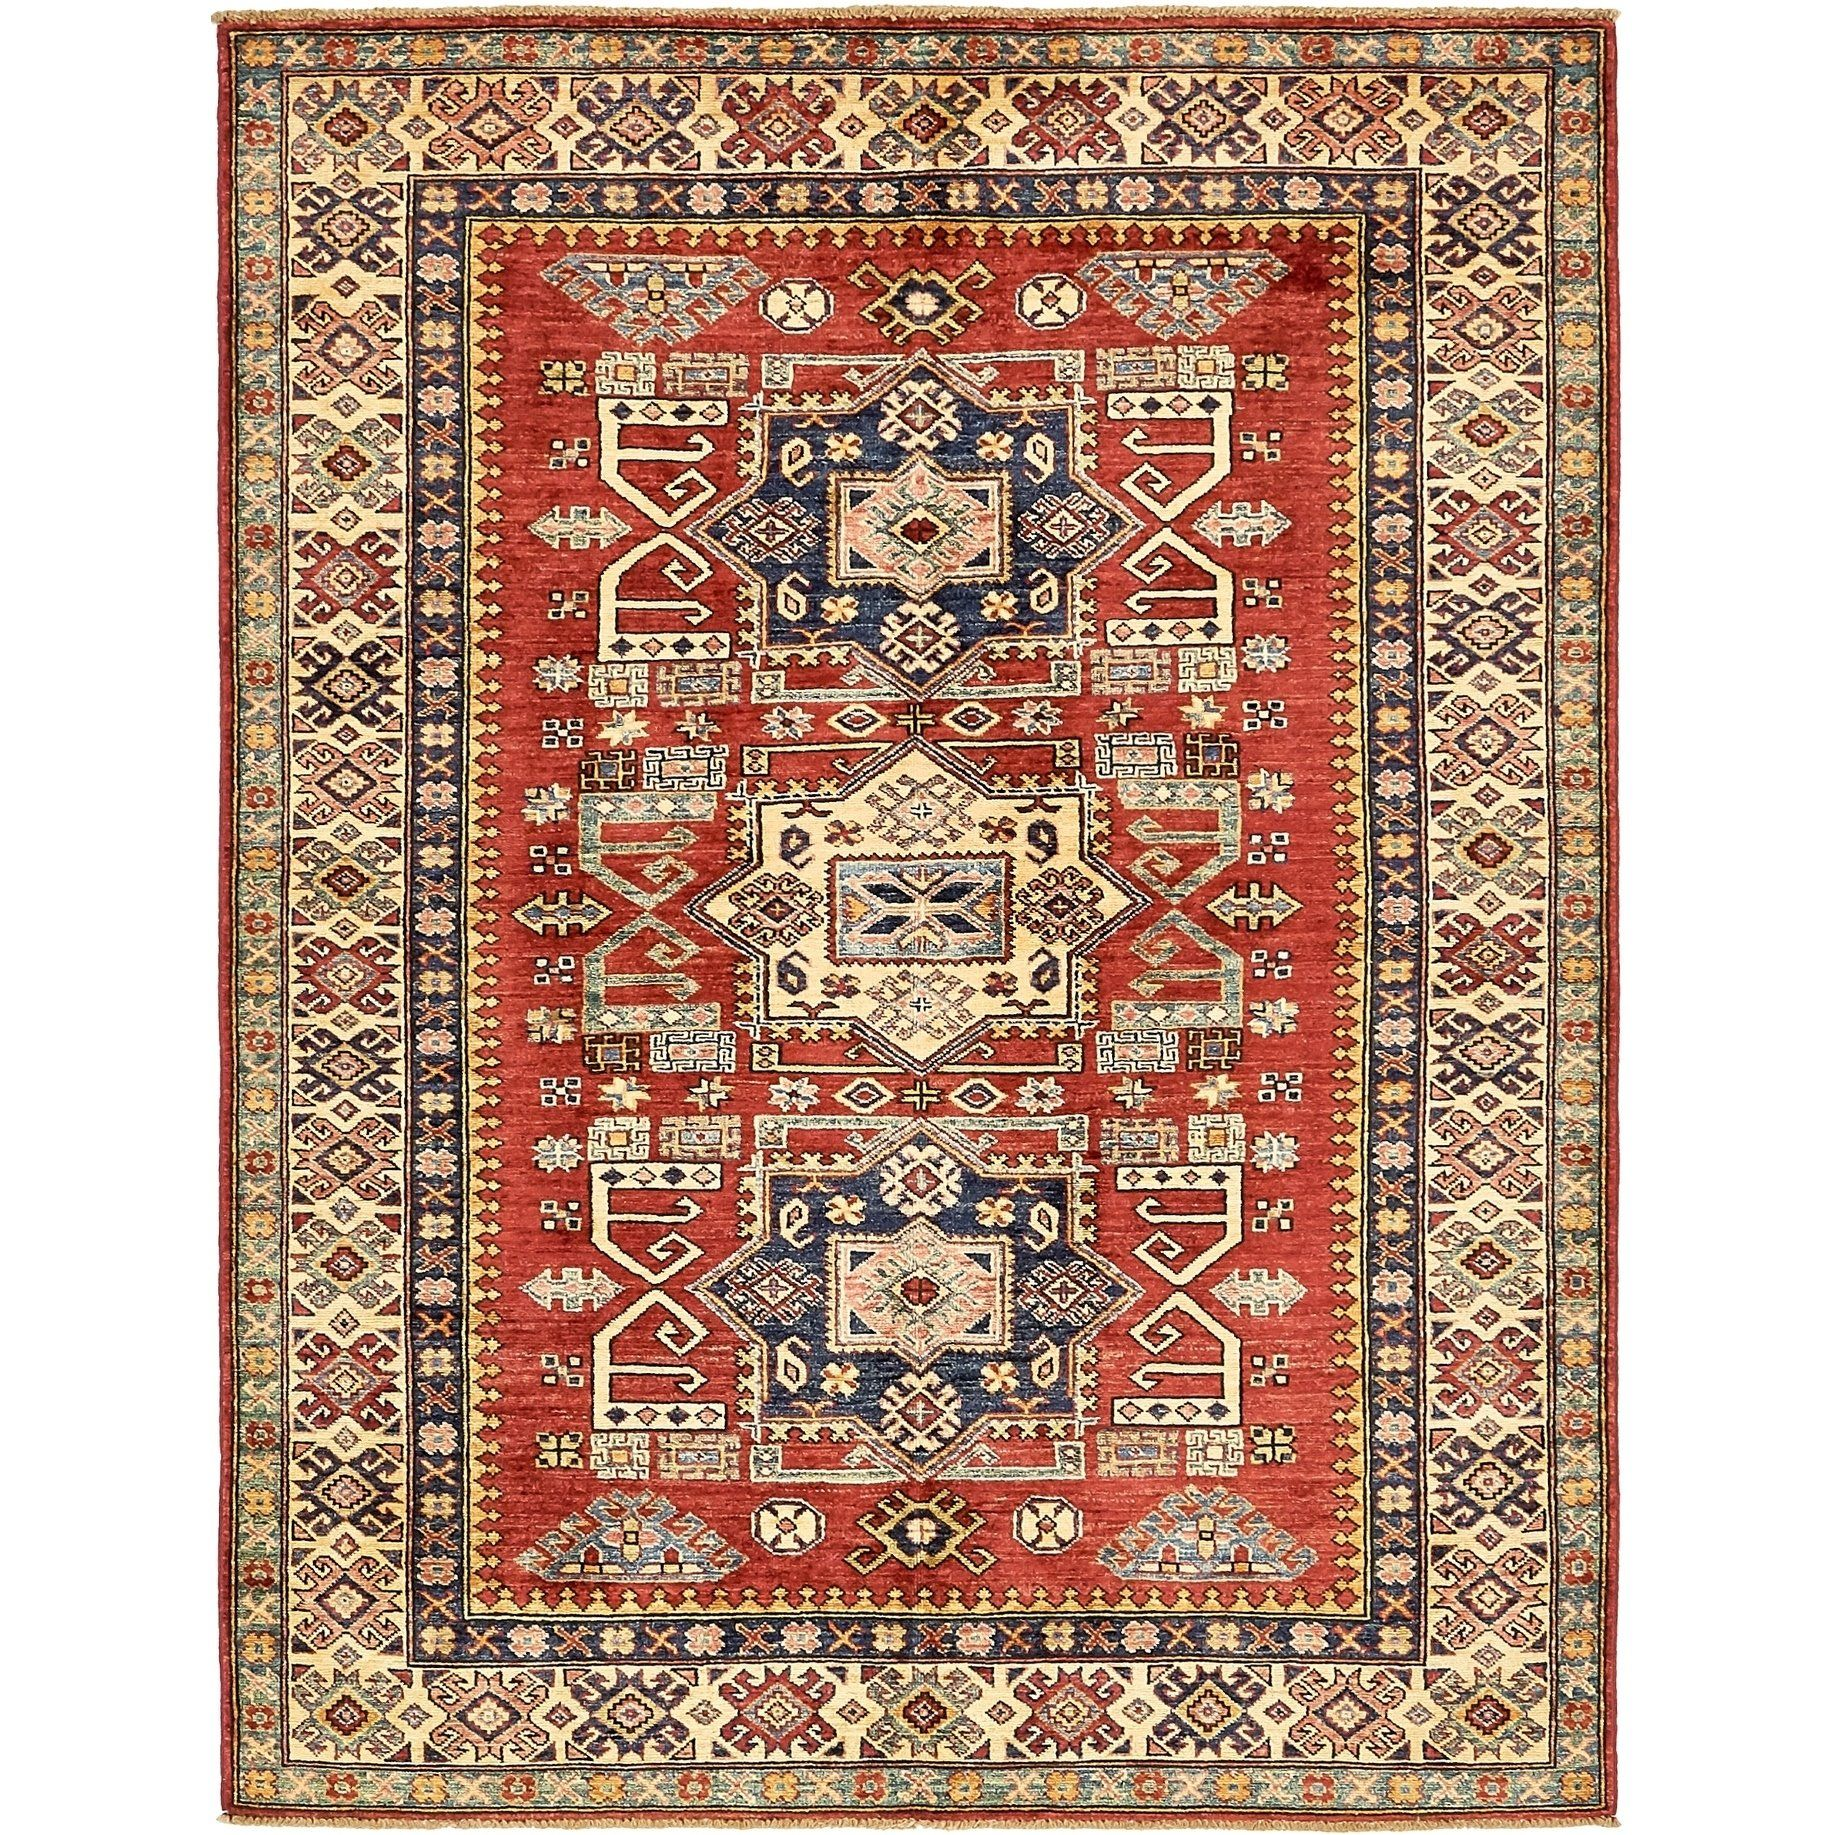 Refurbished Hand Knotted Kazak Wool Area Rug 5 X 6 6 Red 5